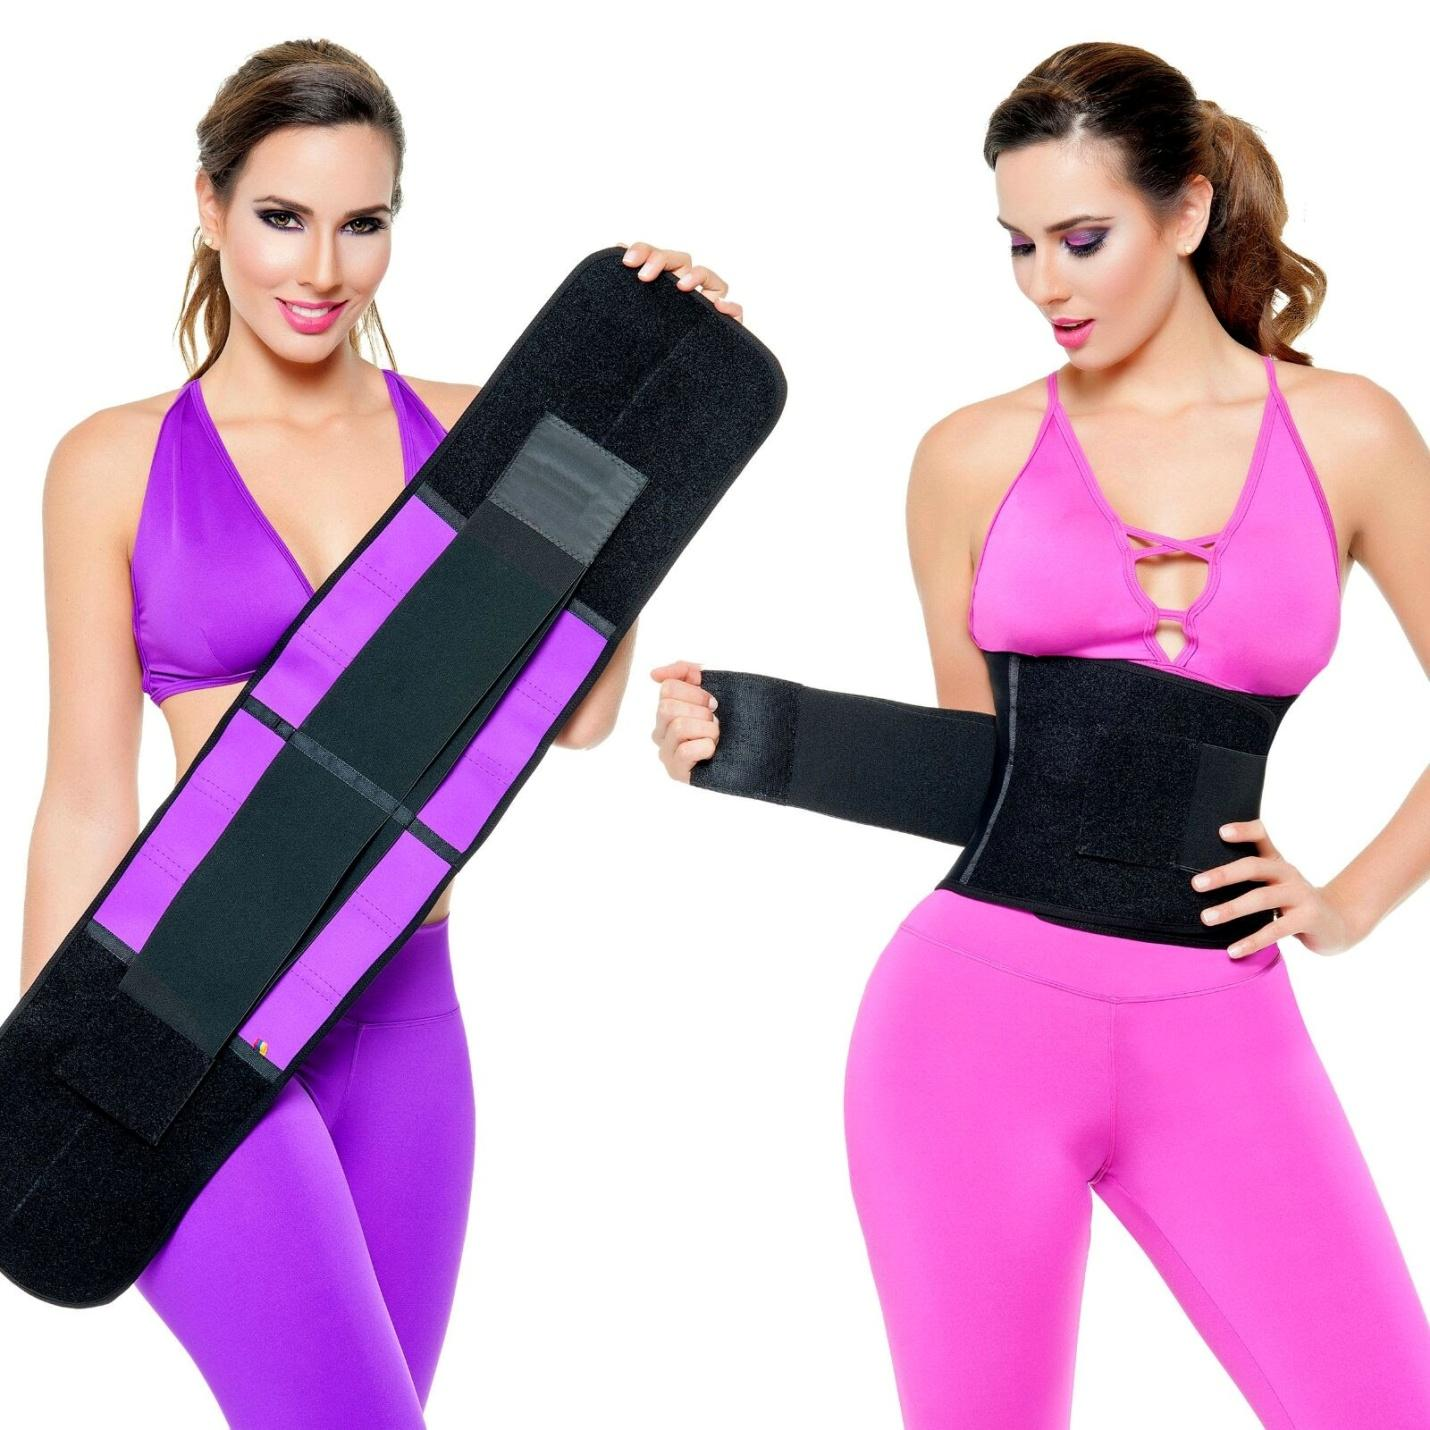 5 Benefits Everyone Can Have From Waist Training